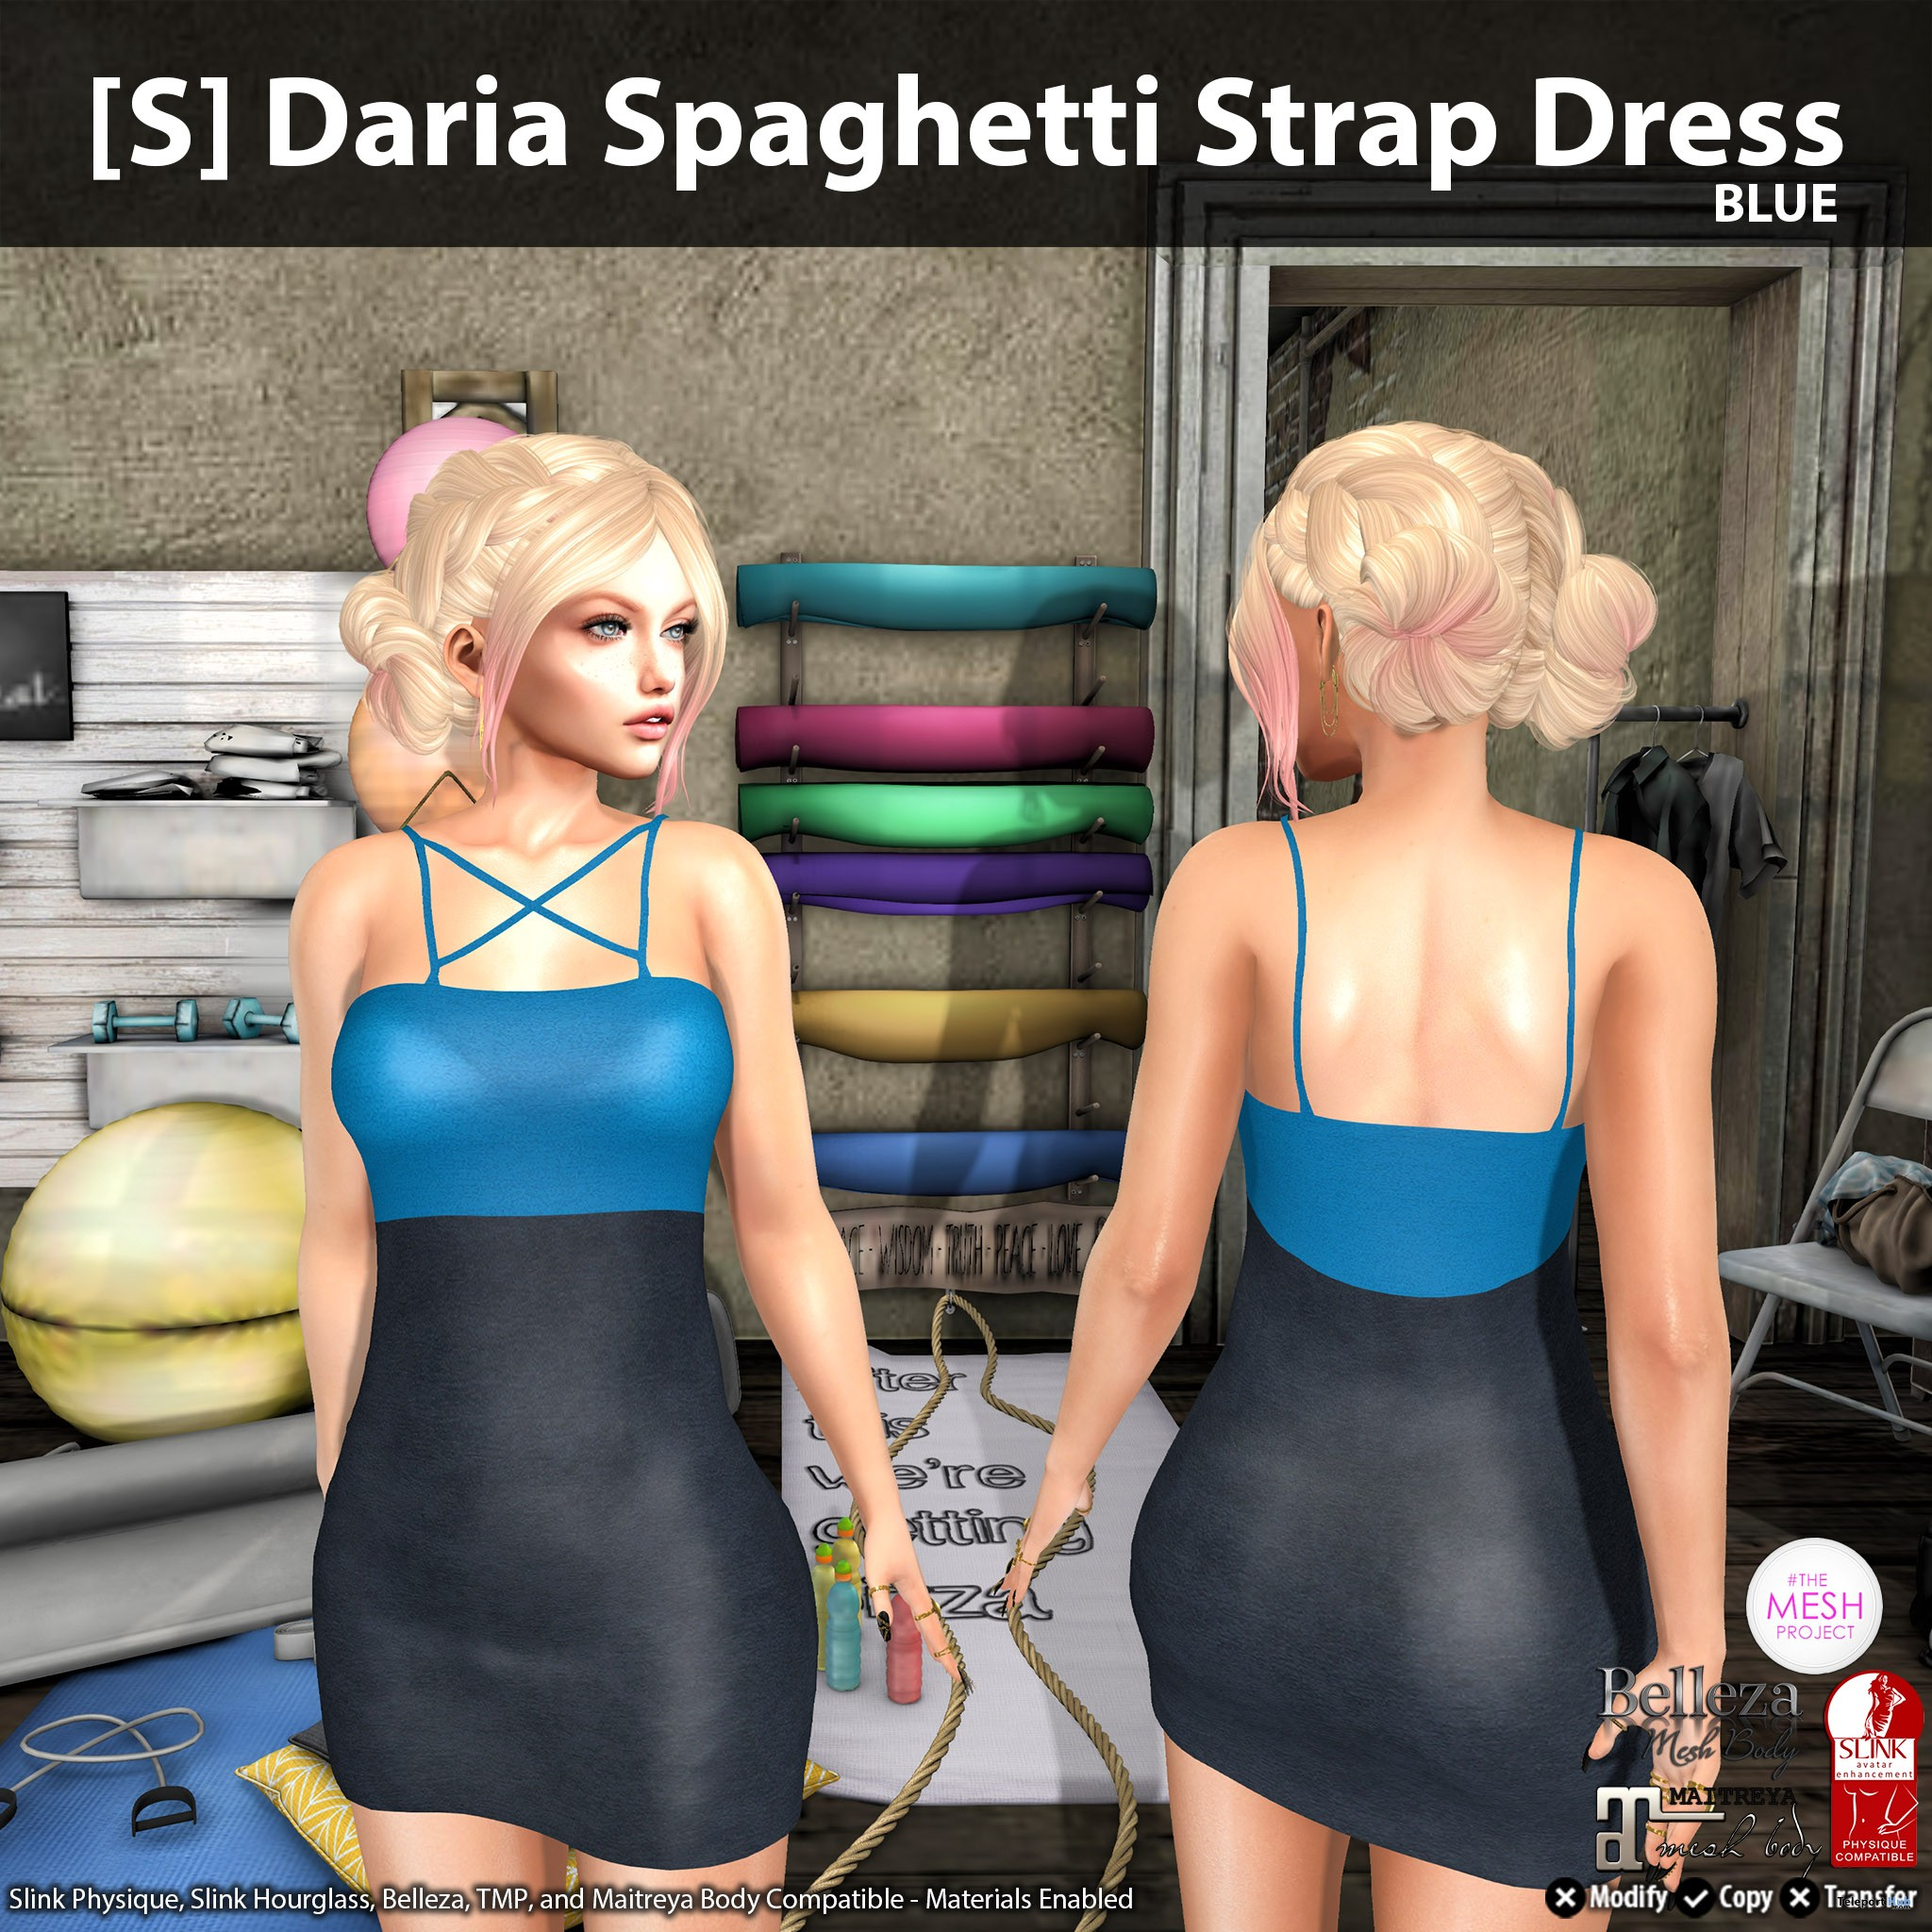 New Release: [S] Daria Spaghetti Strap Dress by [satus Inc] - Teleport Hub - teleporthub.com